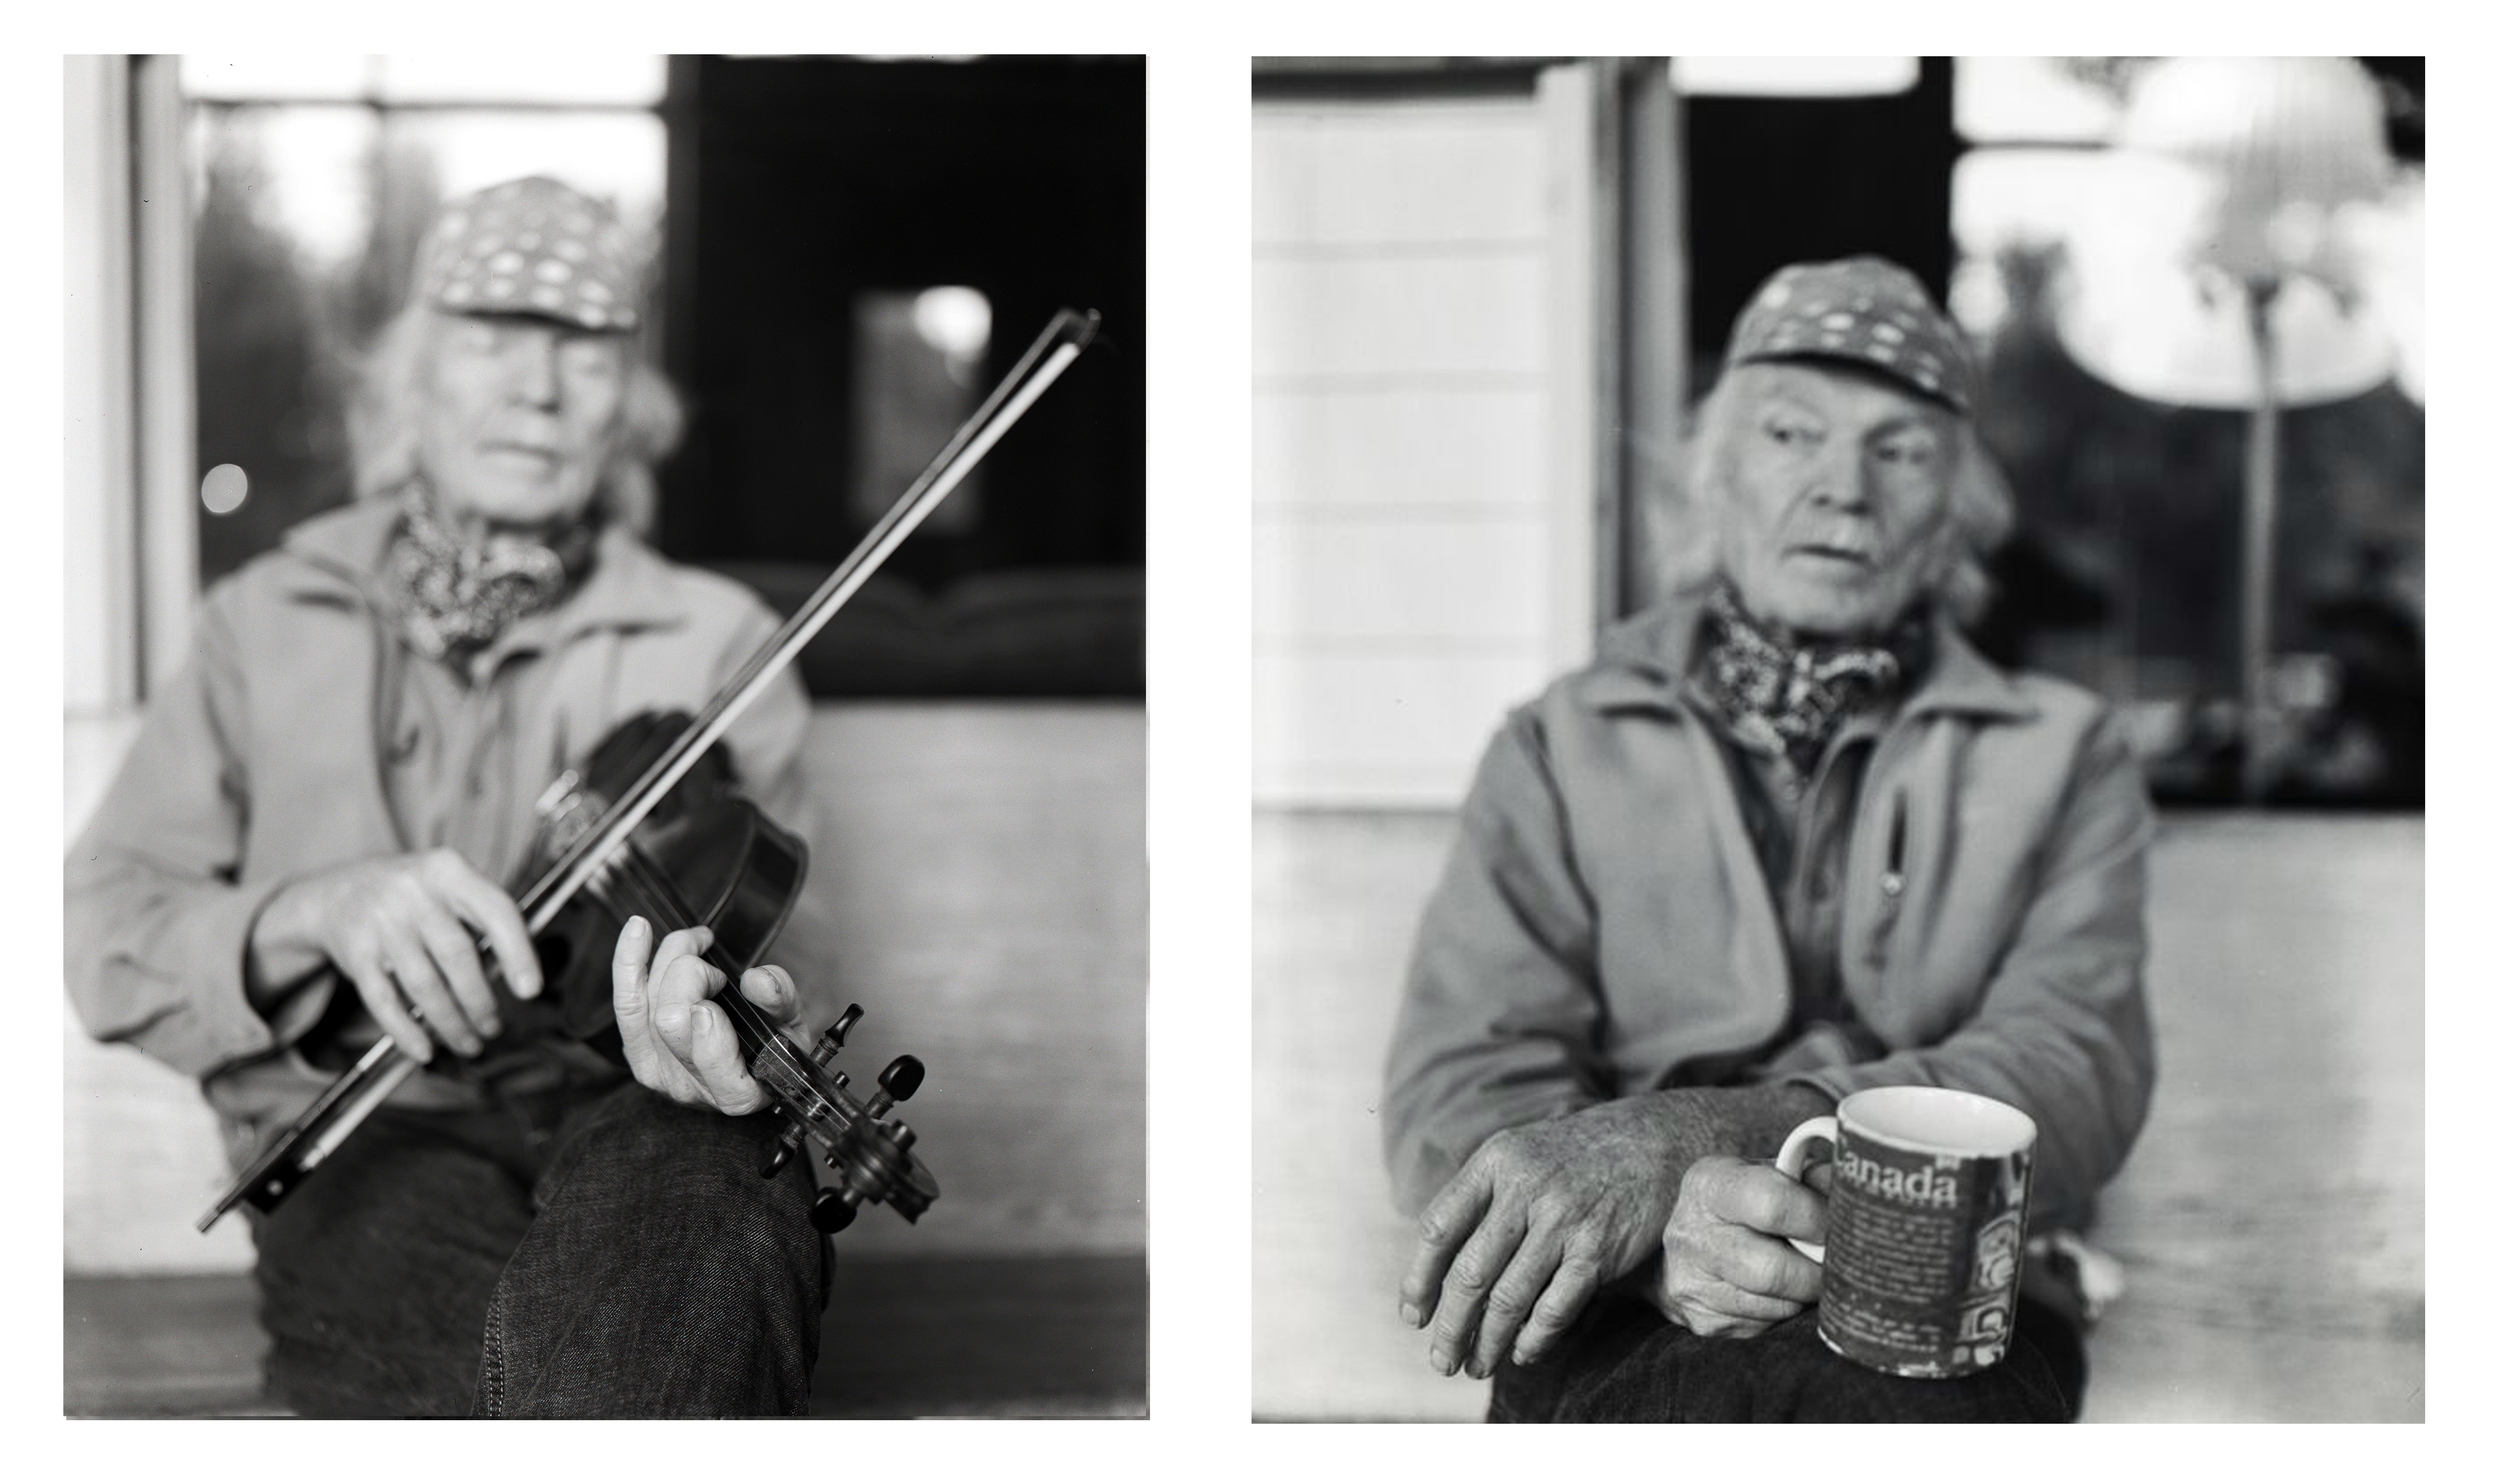 Michael Hurley with Fiddle and Tea Diptych, 2015 - I started to focus on making hand portraits of people who worked with their hands: artists, makers,bakers and cooks. I was fortunate enough to be at the right place at the right time with these images. These images of Michael Hurley were made at the Sou'Wester at the coast. It was Josh and my 6th anniversary together and we ventured out to spend Valentine's Day at the coast to see Michael Hurley sing. I love the intimate lodge at the Sou'Wester and the show was amazing.After the show and a little too much to drink, I approached Michael and asked him if I could photograph him sometime. I told him how I liked his hands, which I realized later sounds a touch creepy, no pun intended. Somehow he said yes, I think it was mostly because I had my Rolleiflex around my neck and he complimented me on it.The images were taken with my Crown Graphic 4x5 on Ilford HP5, the morning after the show, the light was glorious. Michael loves tea so much, he even wrote a song about it.